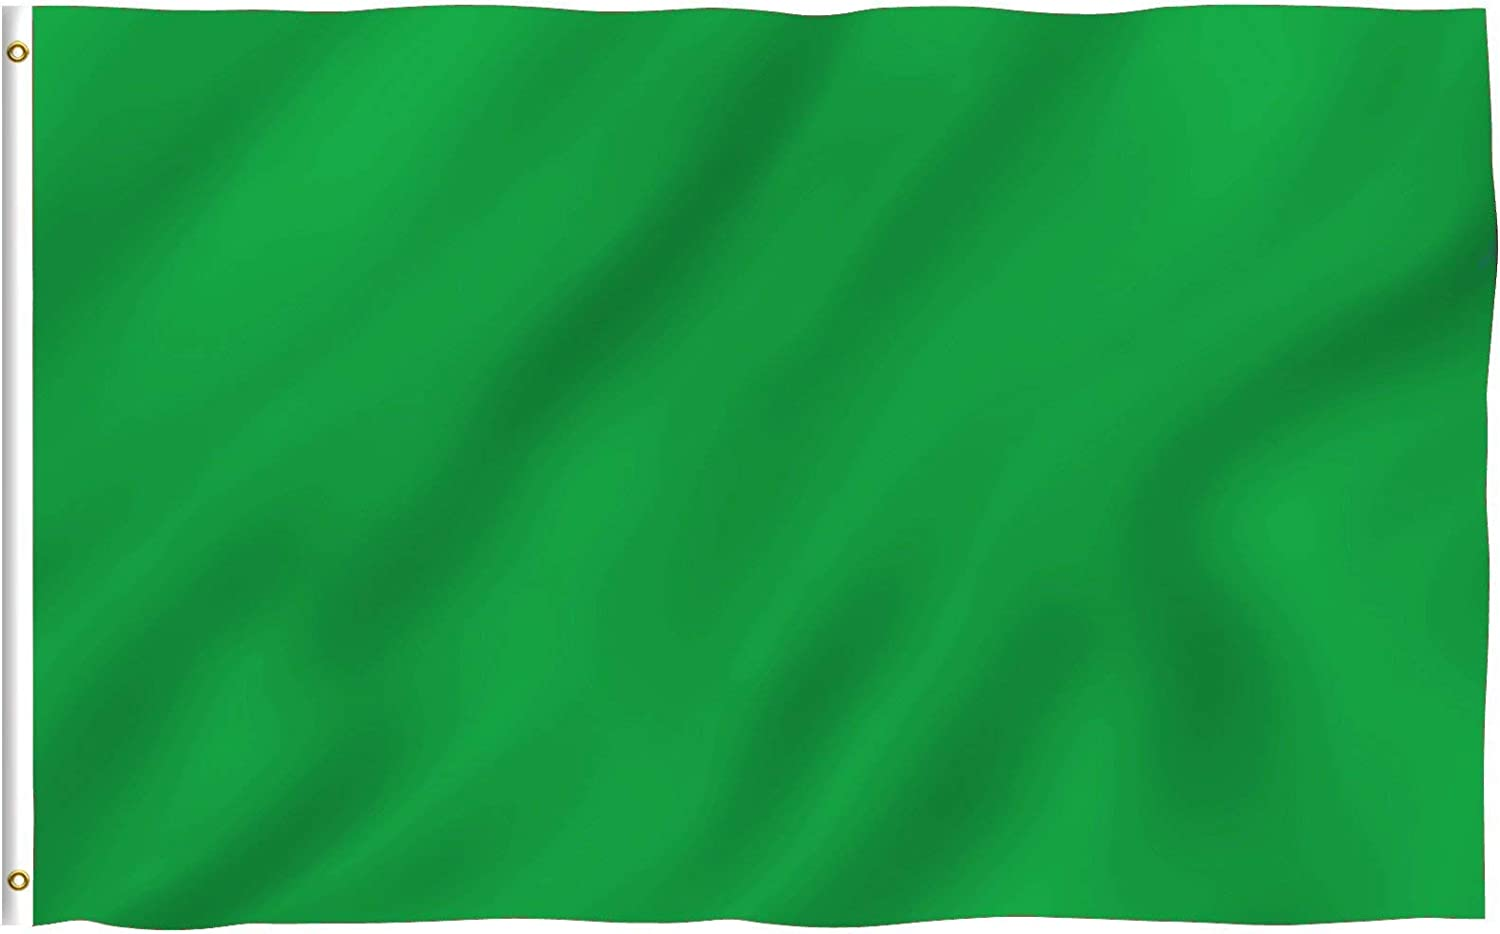 Anley Fly Breeze 3x5 Foot Solid Green Flag - Vivid Color and Fade Proof - Canvas Header and Double Stitched - Plain Green Flags Polyester with Brass Grommets 3 X 5 Ft